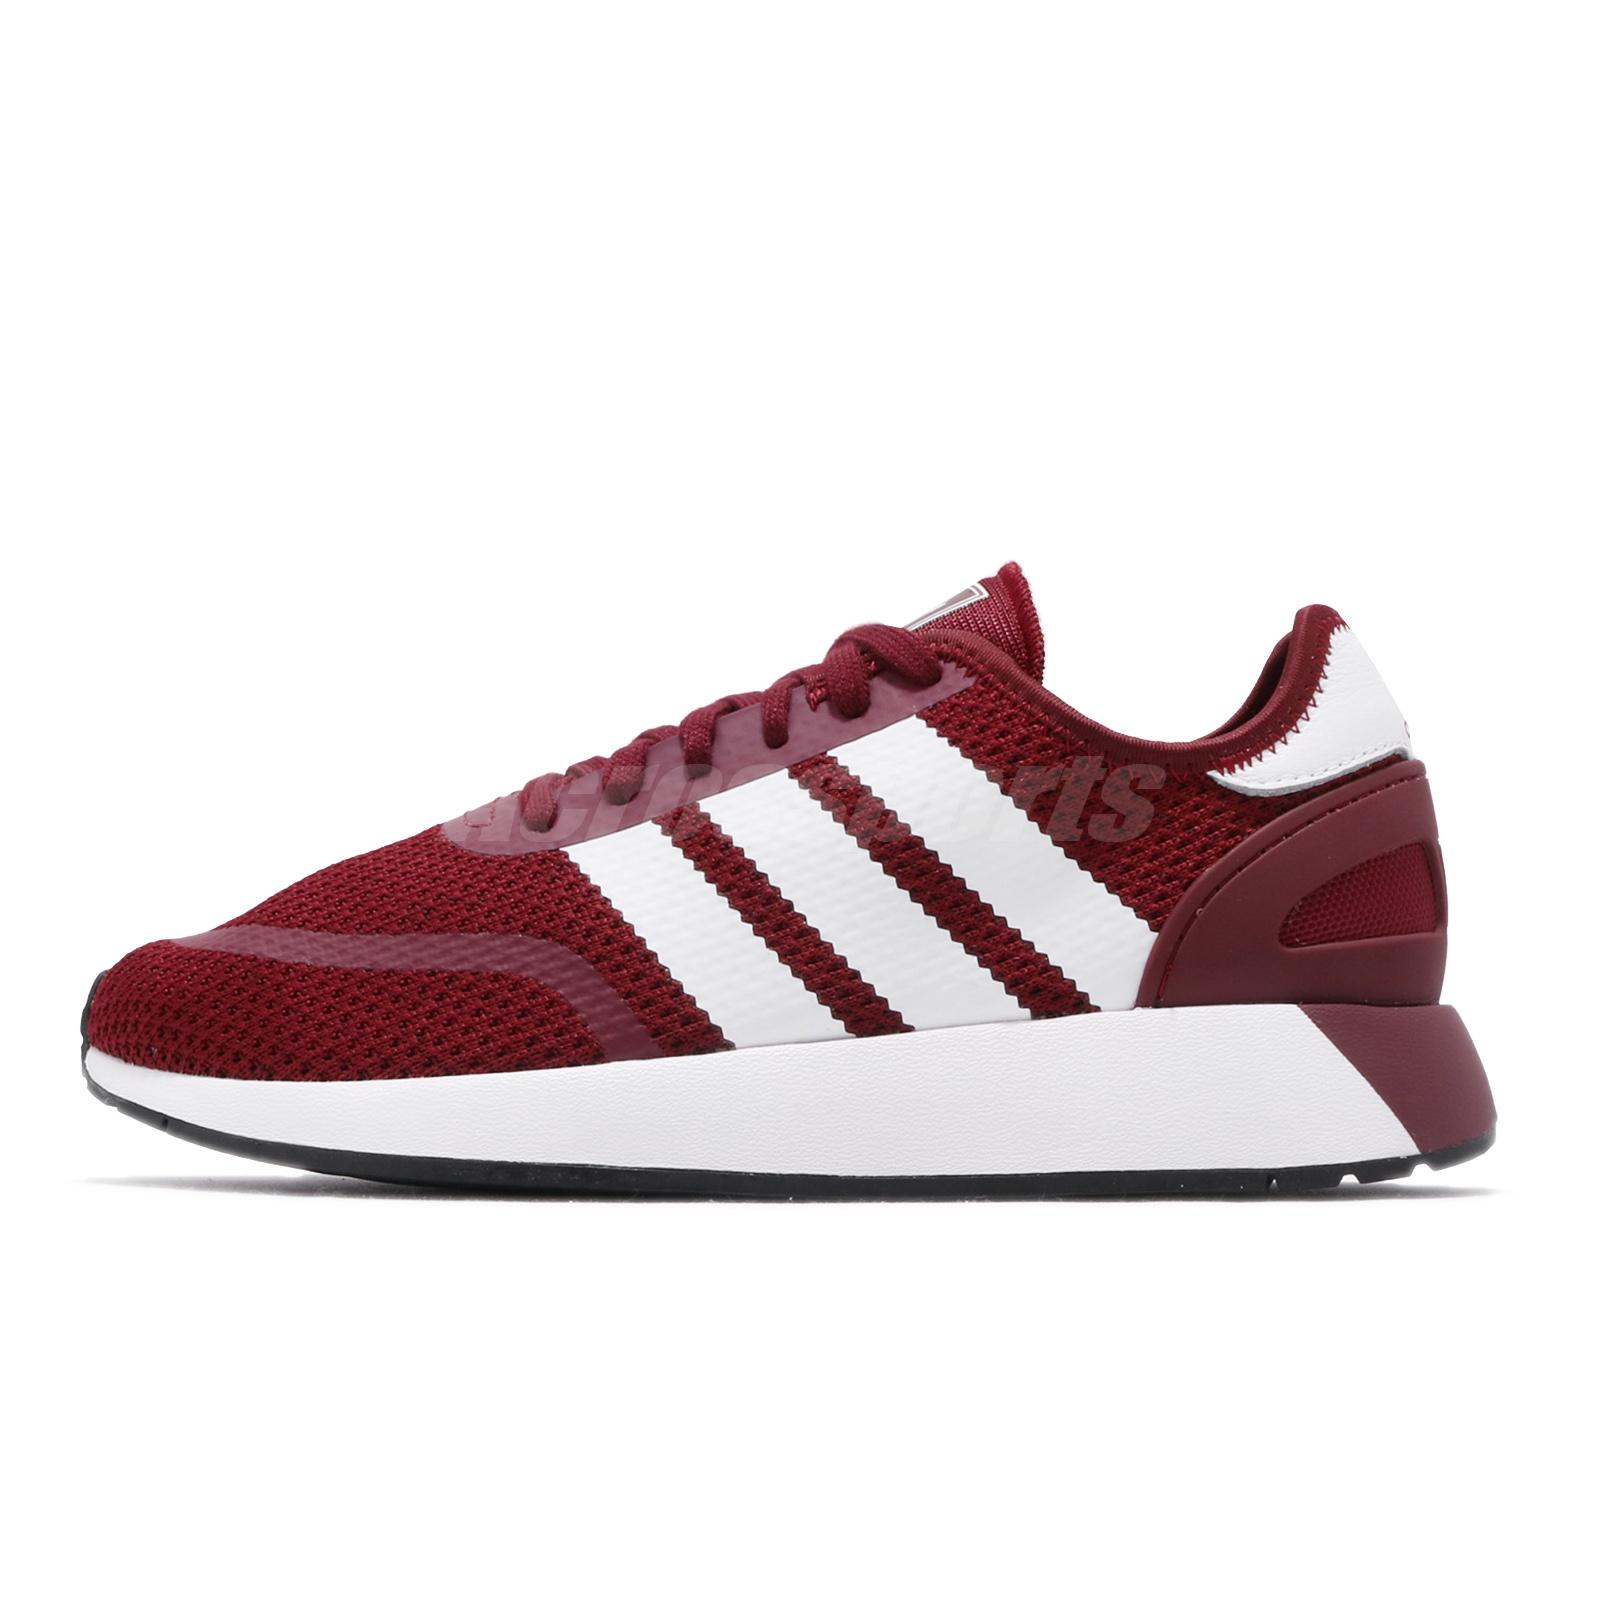 Details about adidas Originals N-5923 Burgundy Red White Mens Running Shoes B37958